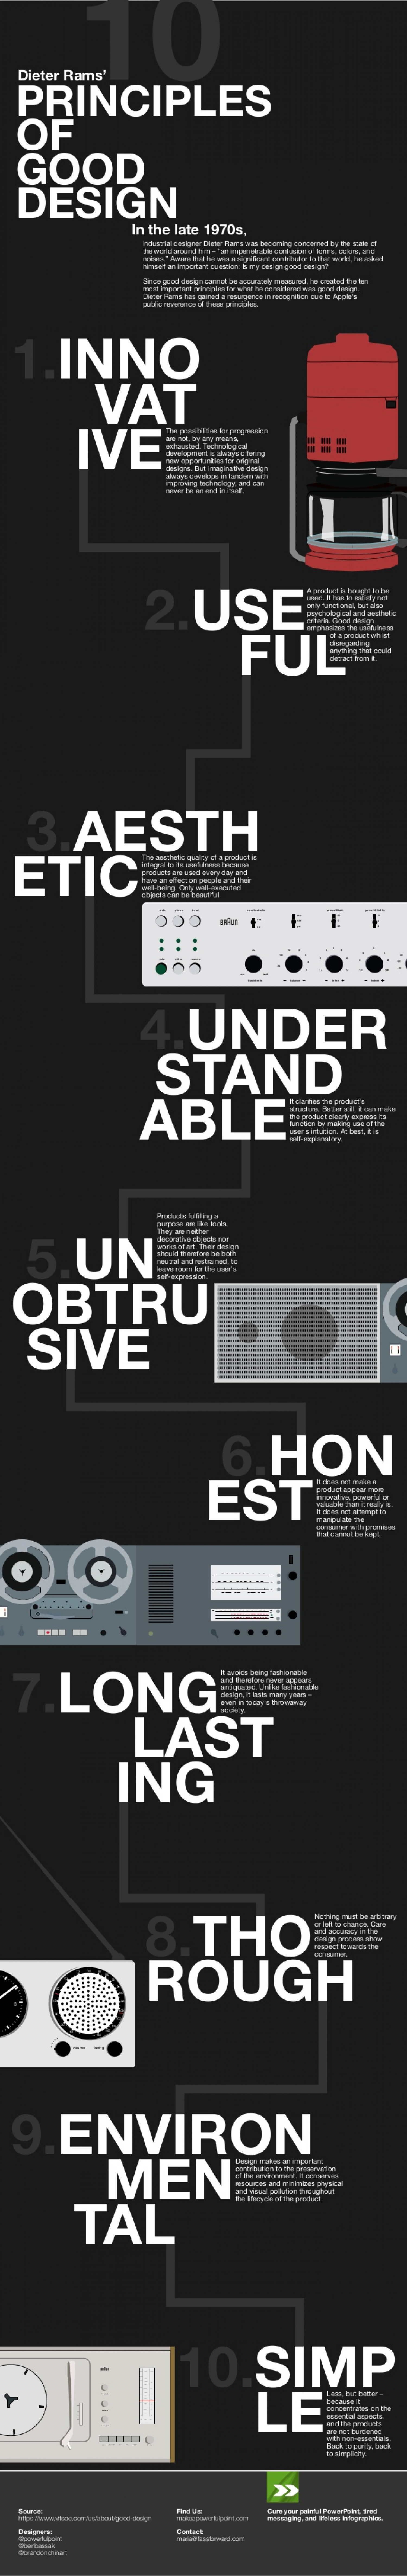 Dieter Ram's 10 Principles of Good Design Infographic